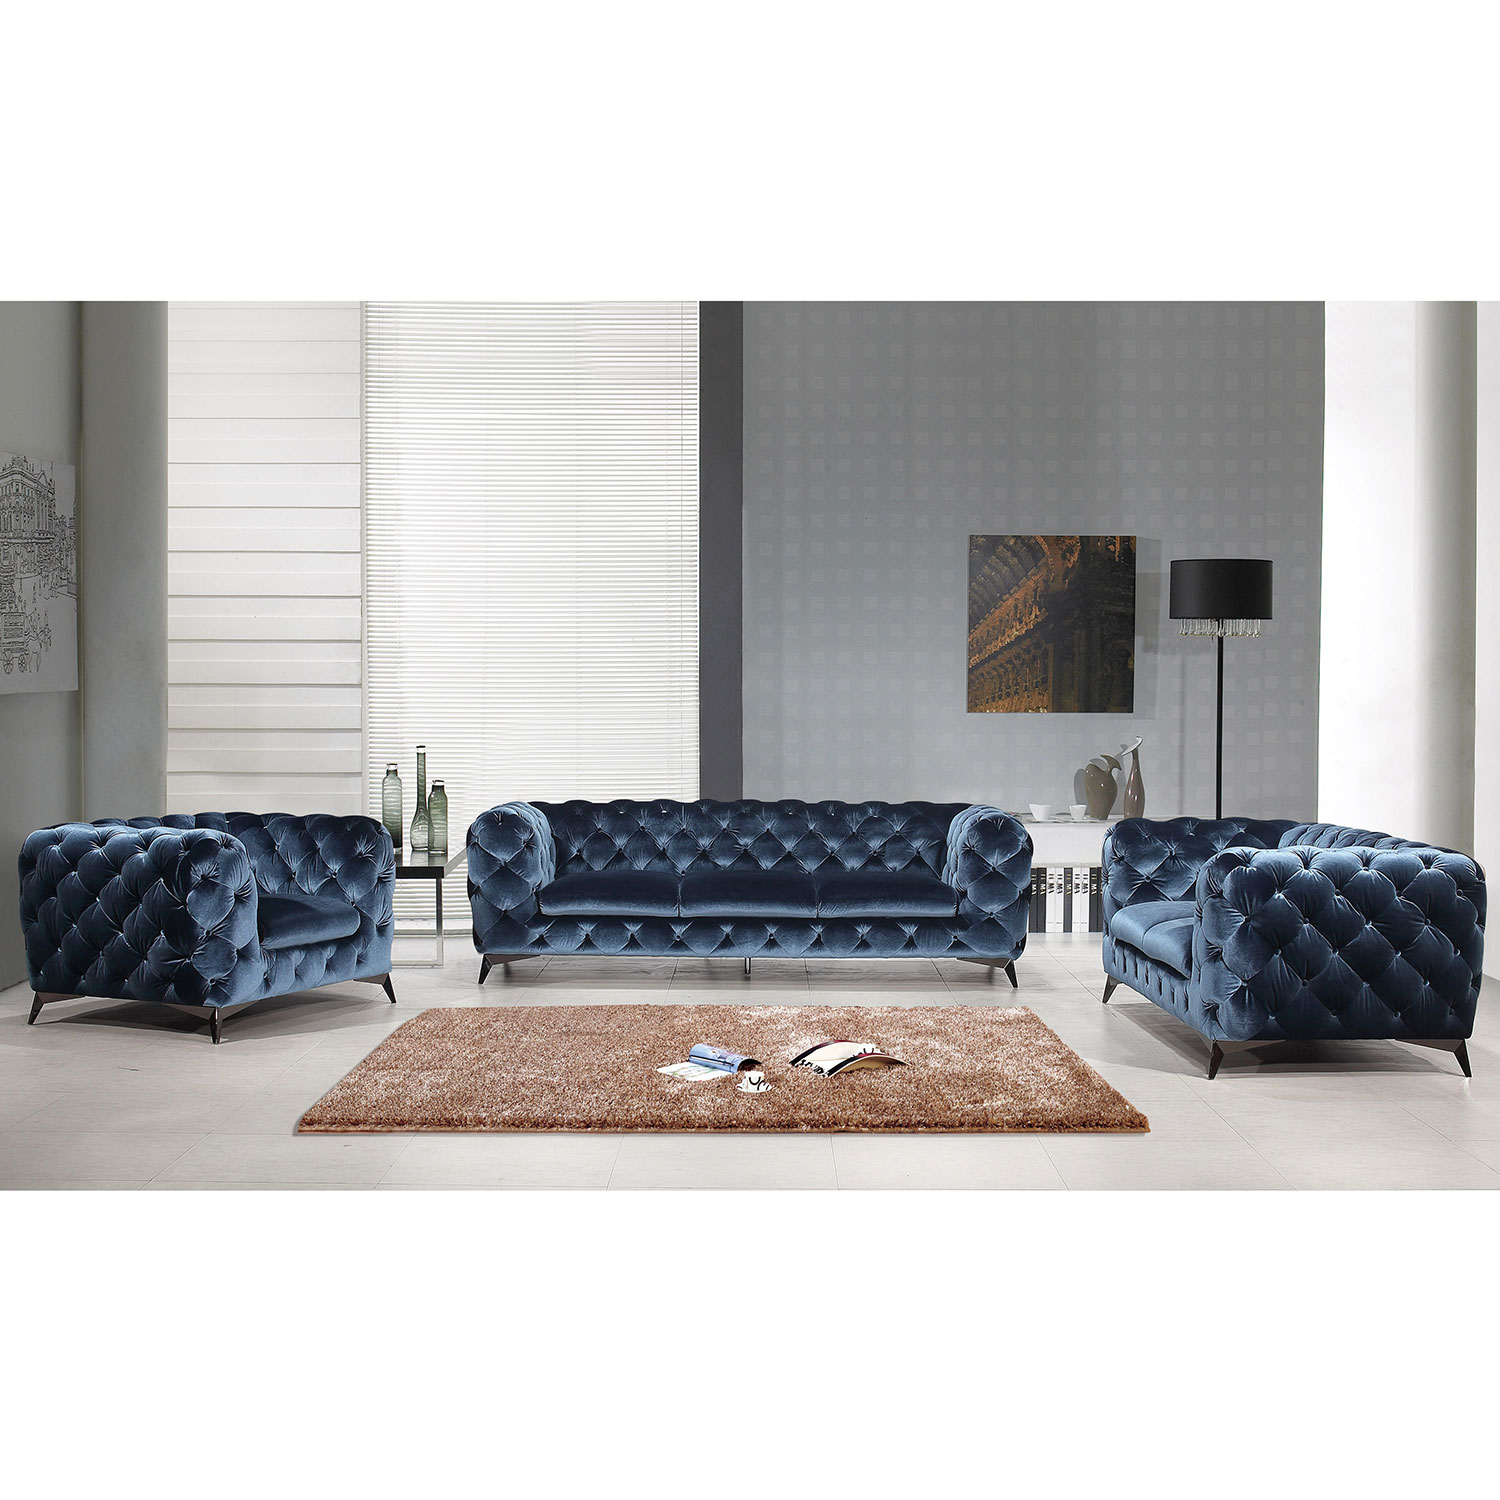 glam sofa set craftmaster leather sofas 3 piece in tufted royal blue velour modern interpretation of the timeless chesterfield is hand sewn fabric to enhance